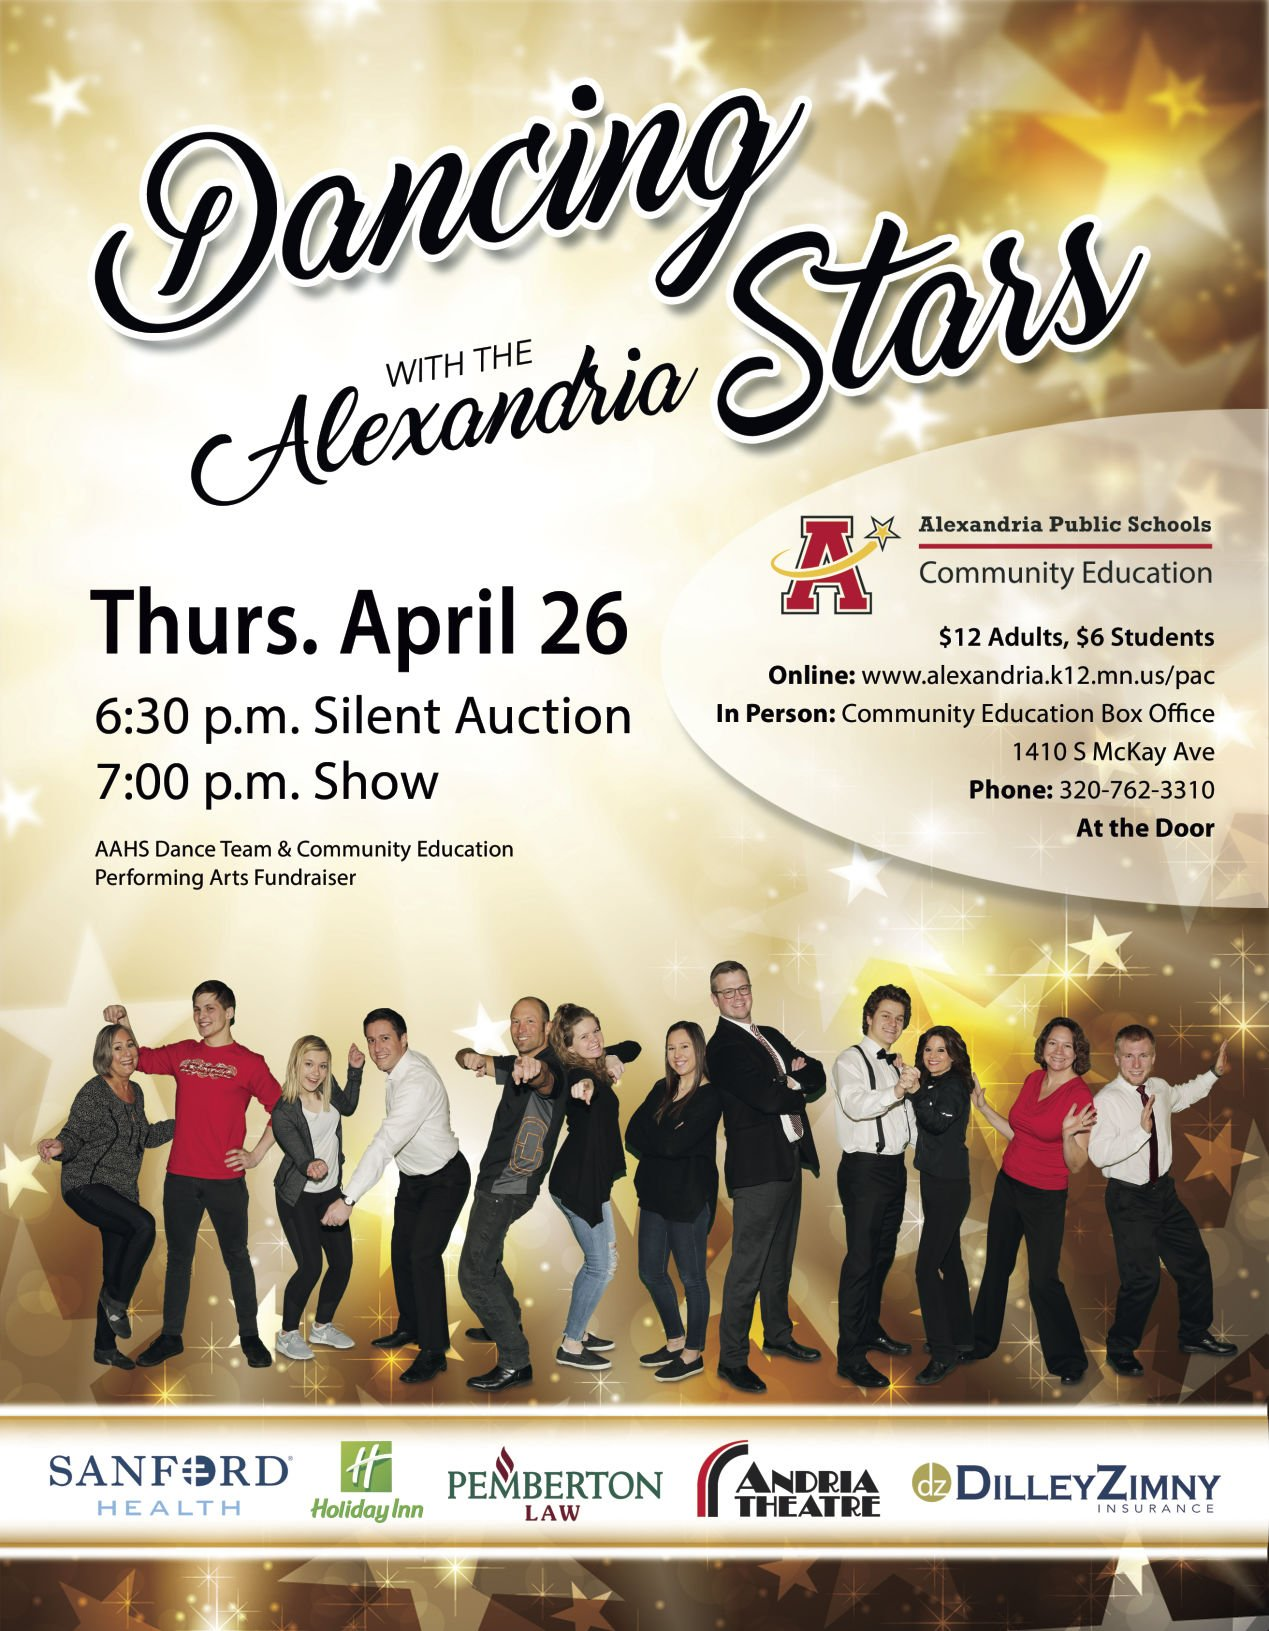 Dancing with the Alexandria Stars